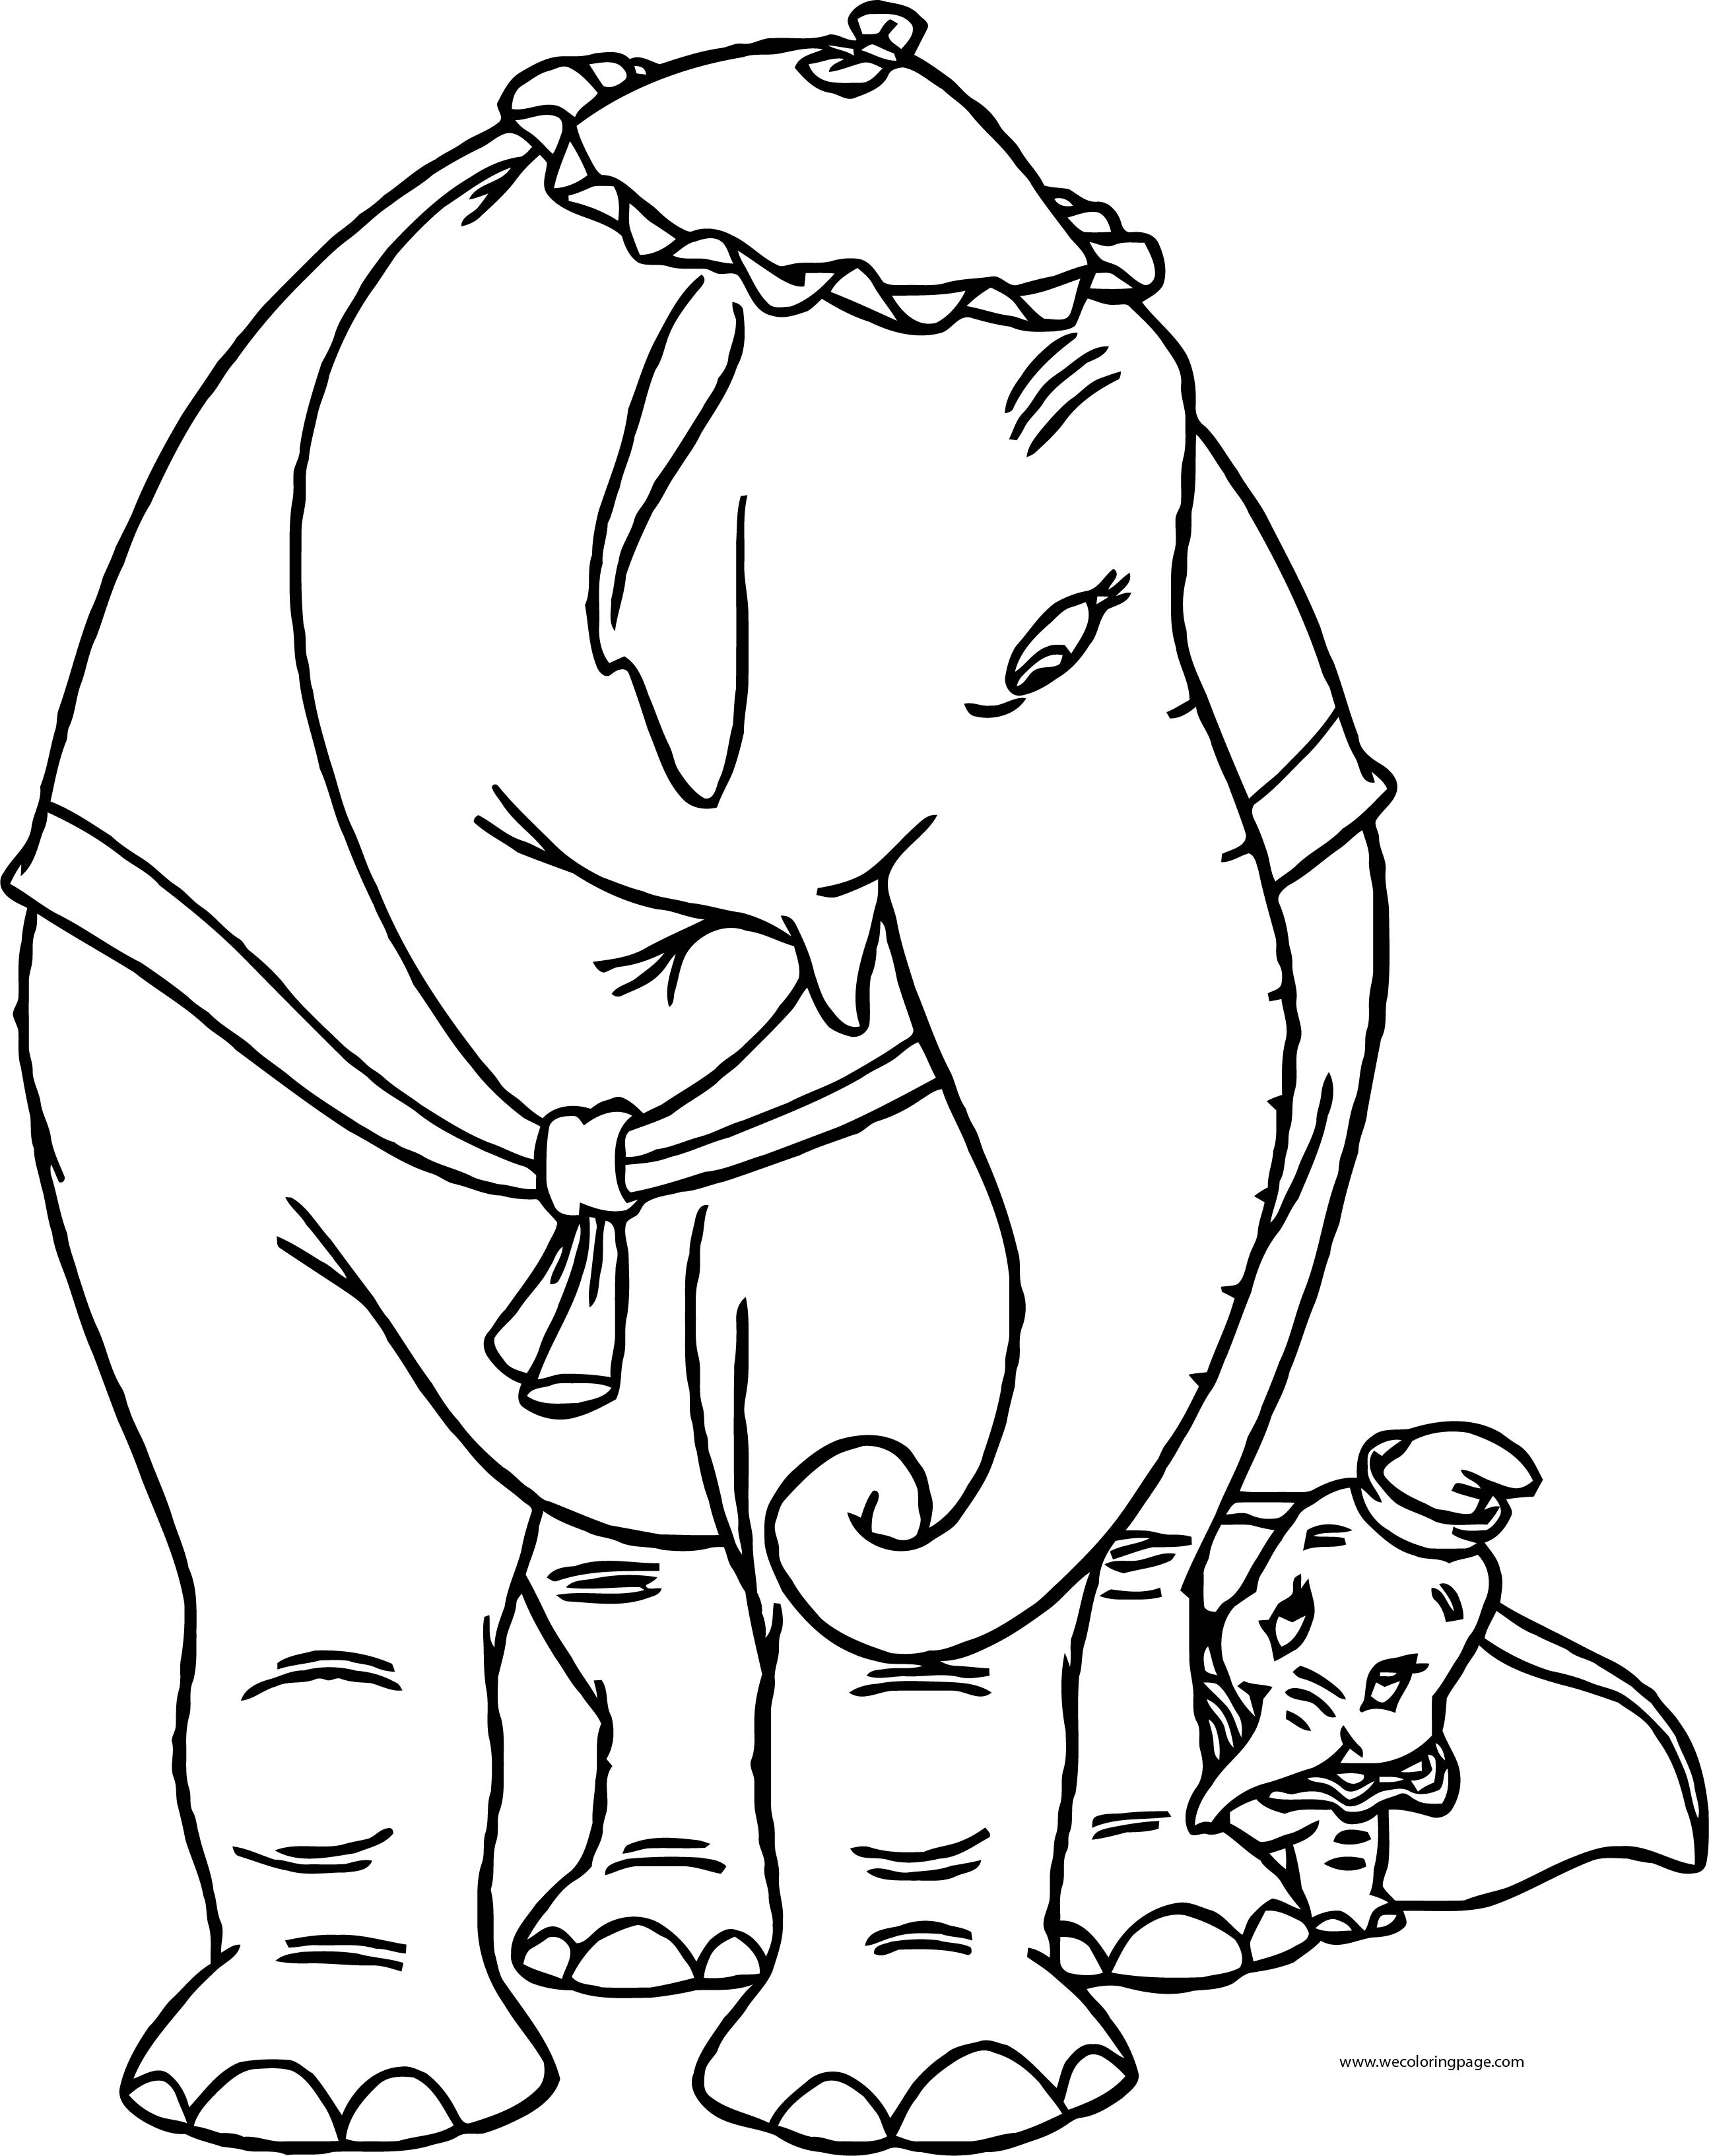 Jumbo 1 Coloring Pages